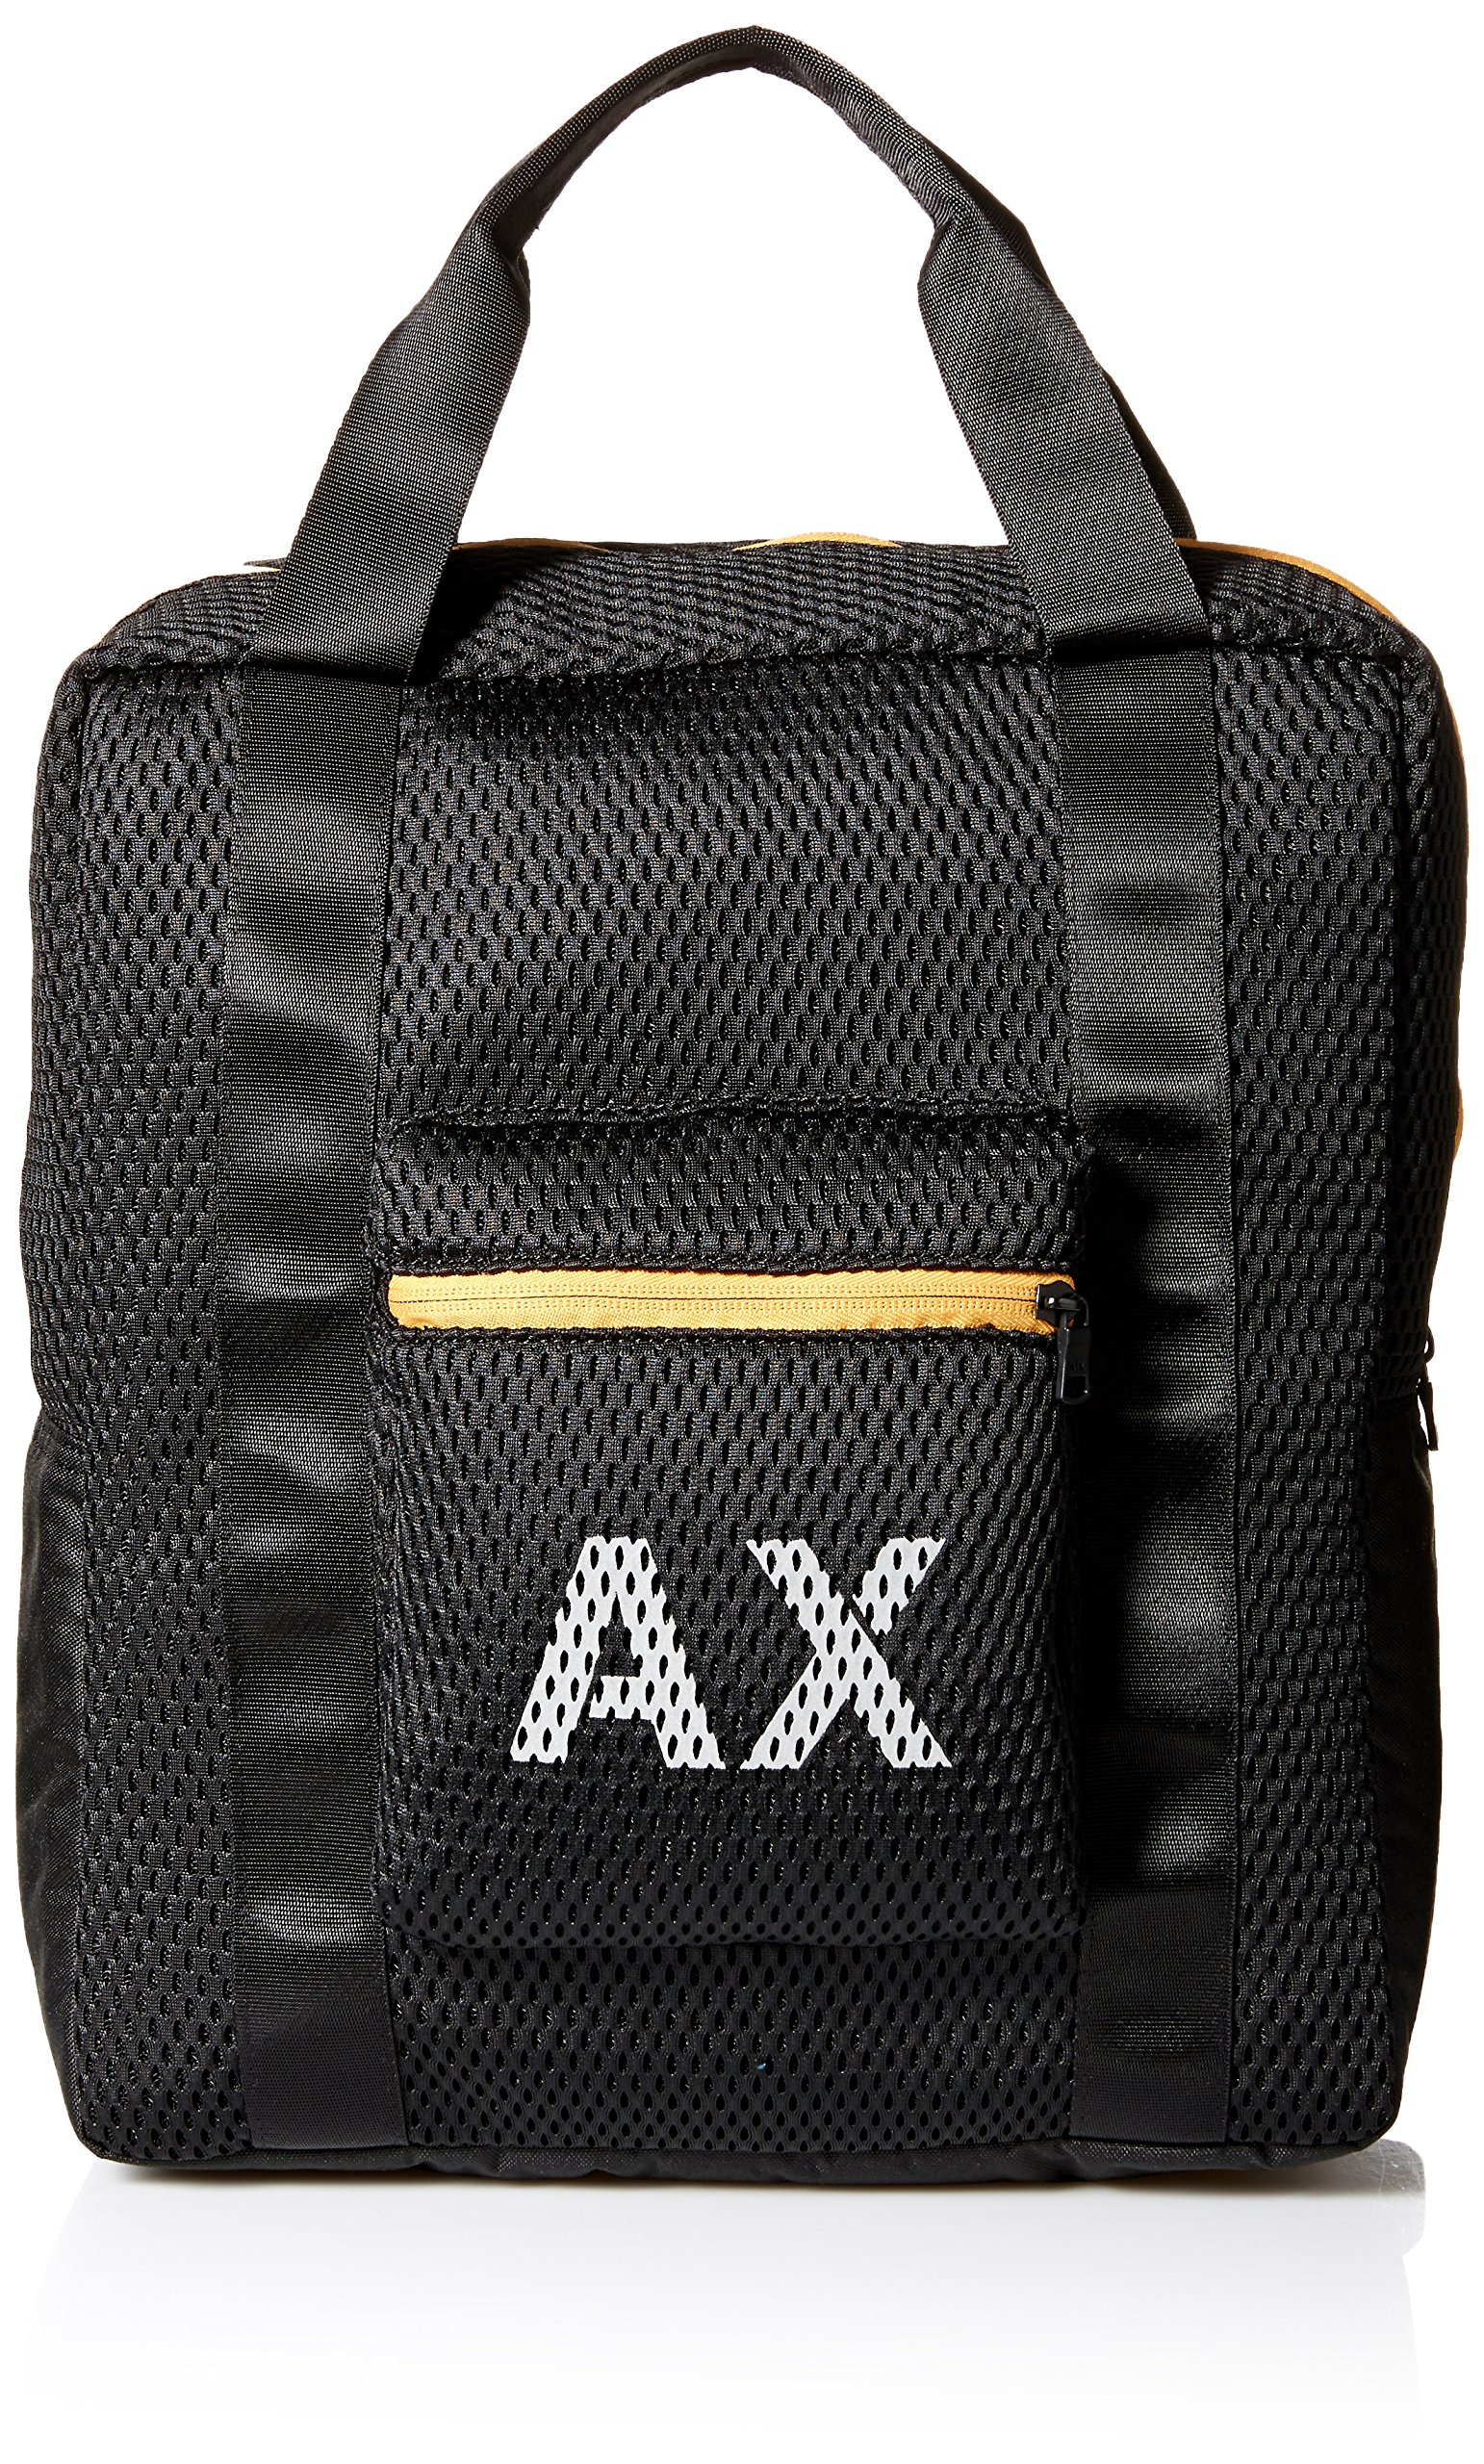 Armani Exchange Men's Spongy Mesh Shopping